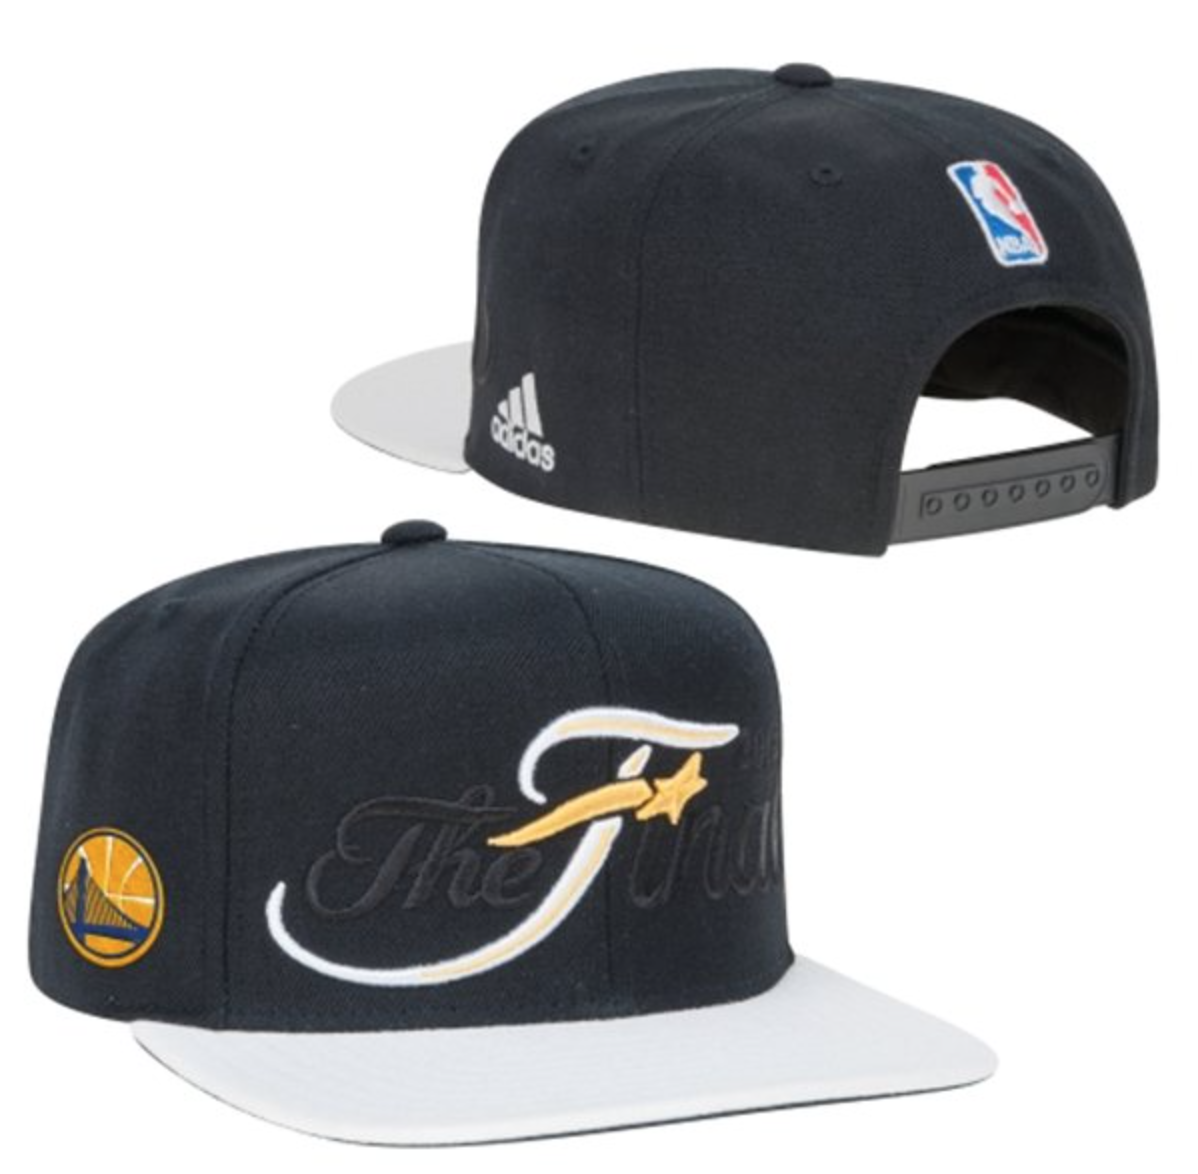 d6666de486fe3 Golden State Warriors adidas 2015 Western Conference Champions adjustable  Hat as worn by the players on court!